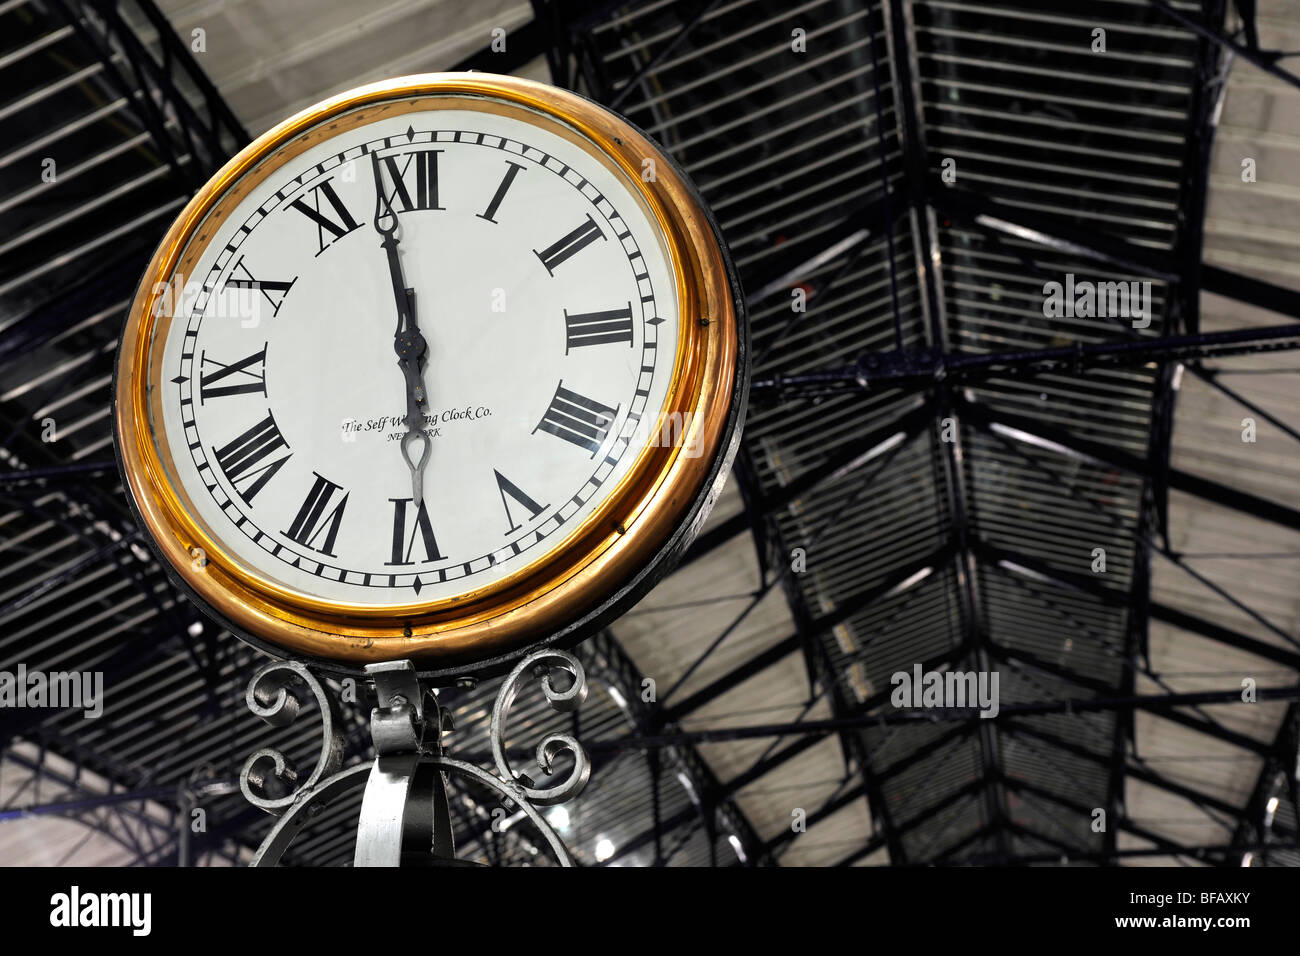 Public clock at Earls Court London Underground Station, London, England, UK. - Stock Image